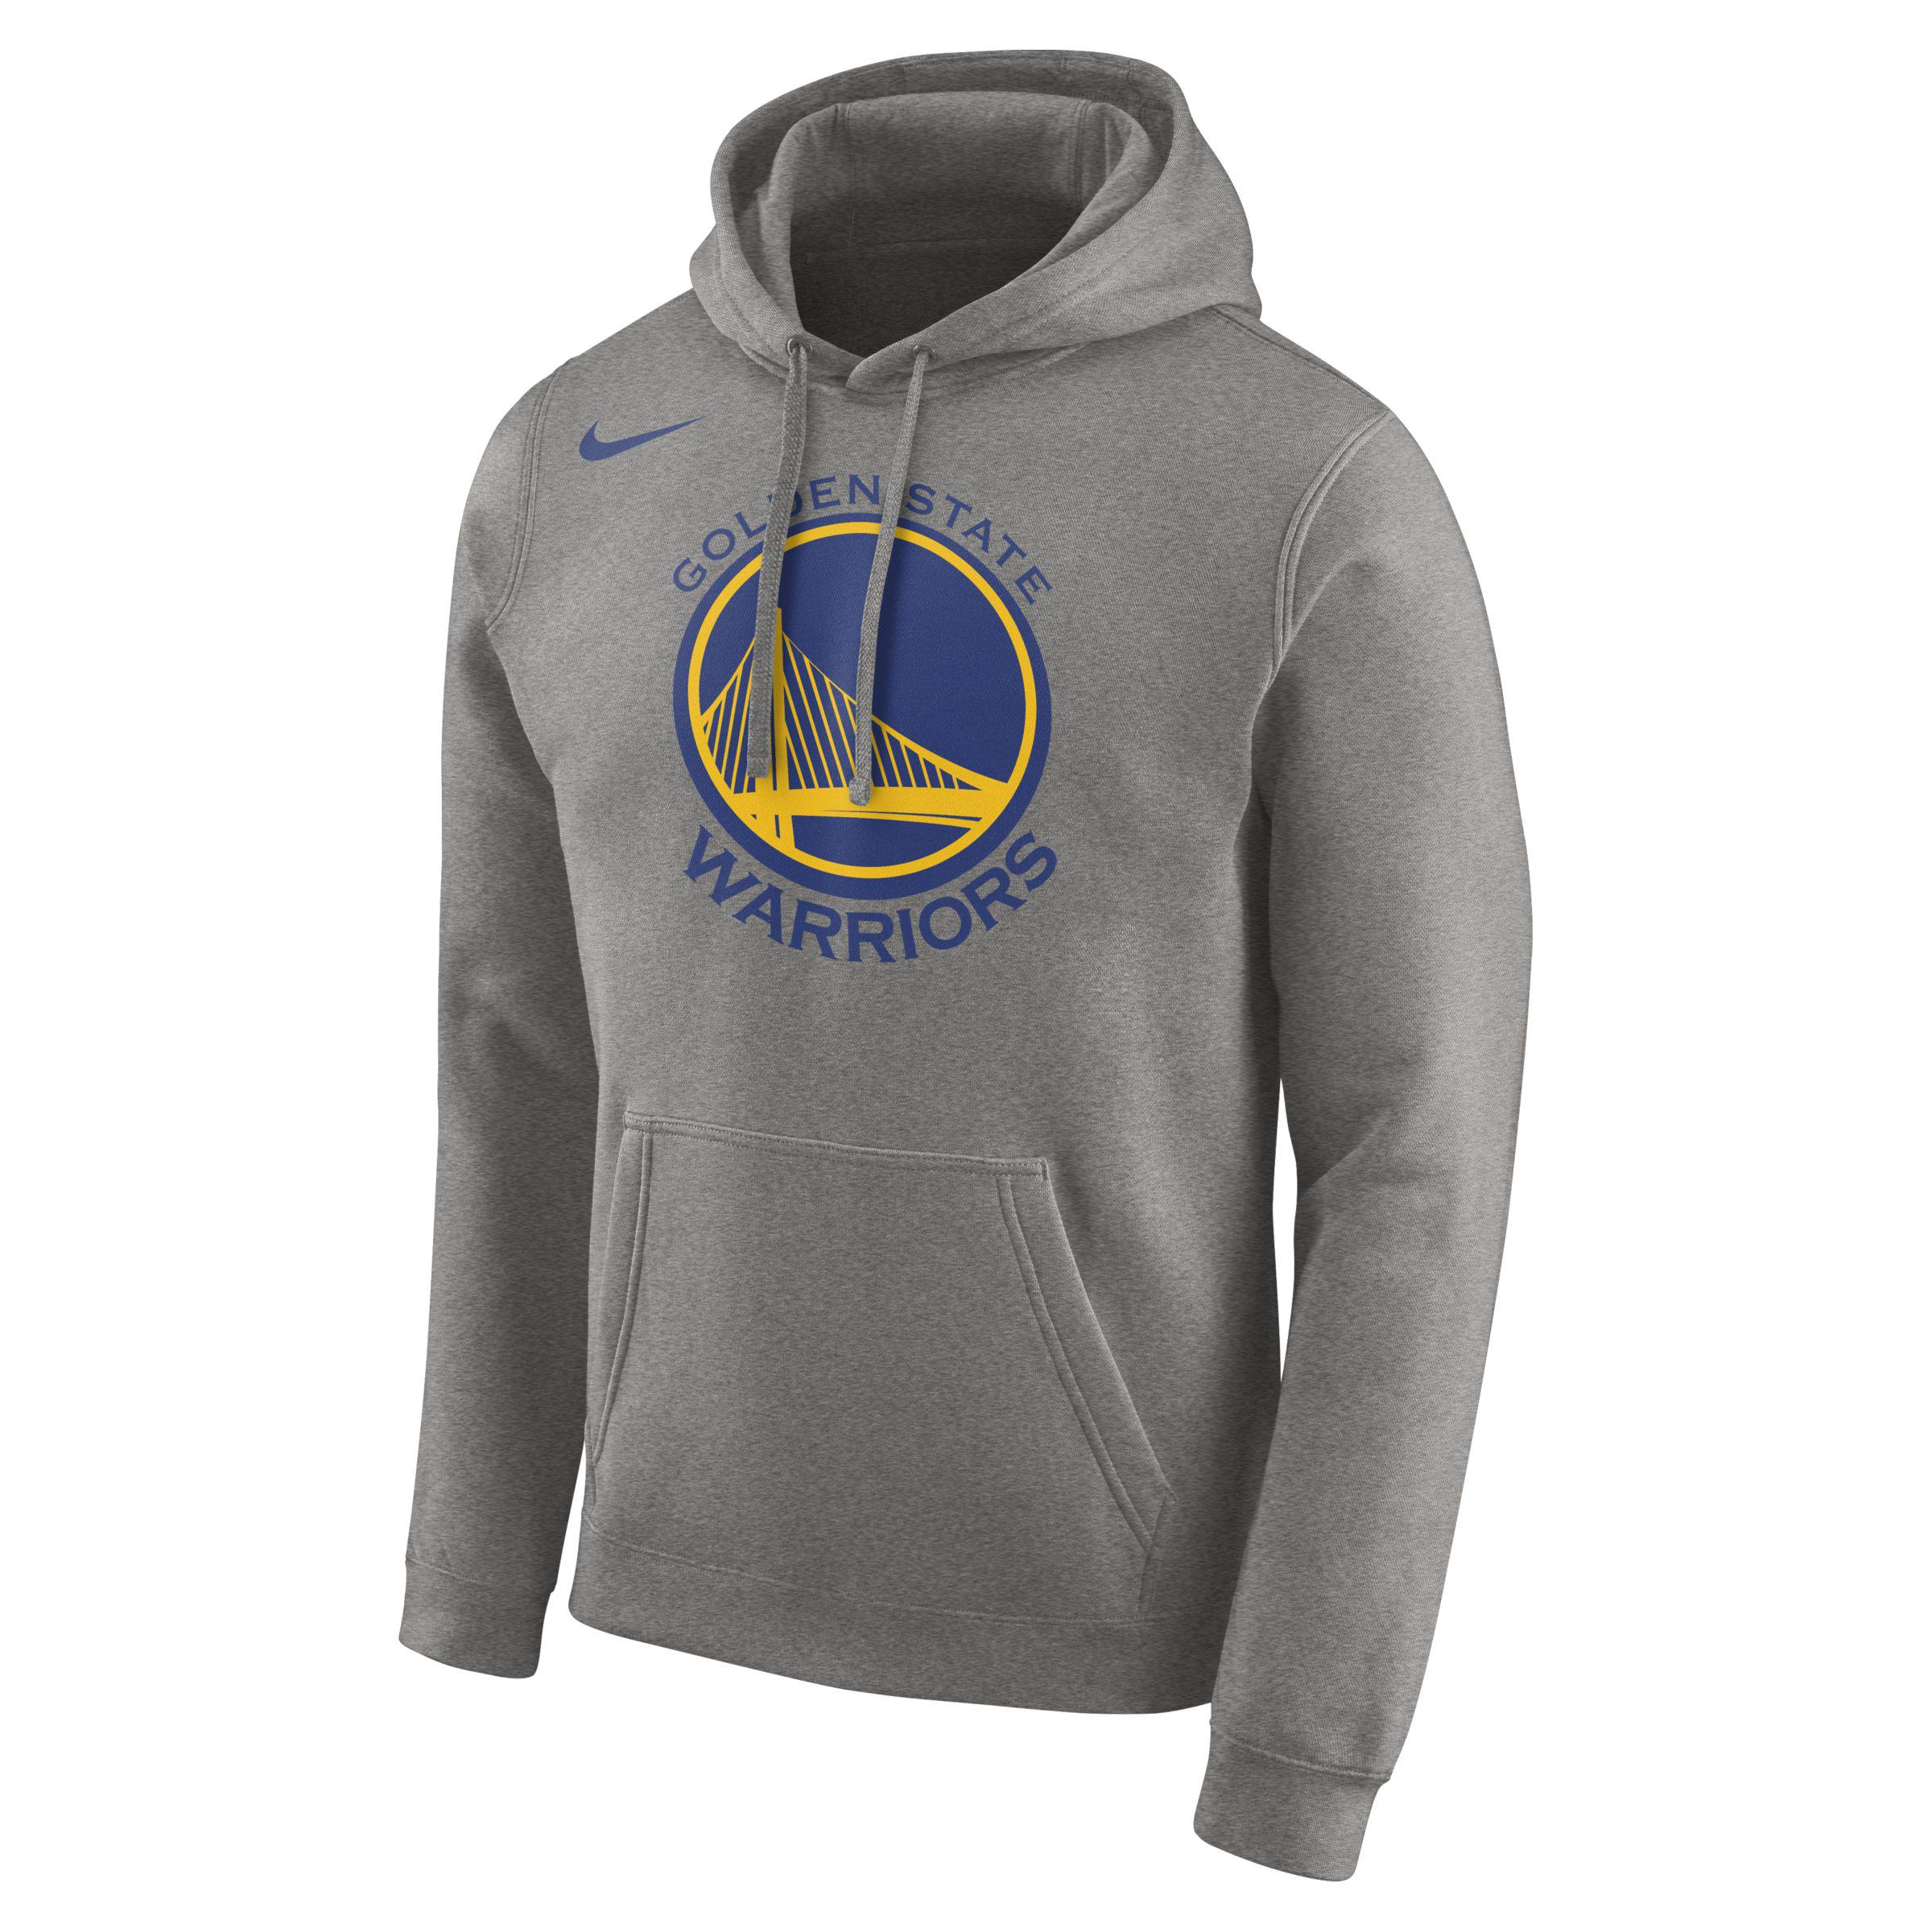 94201f8dbce5 Nike Golden State Warriors Logo Nba Hoodie in Gray for Men - Lyst